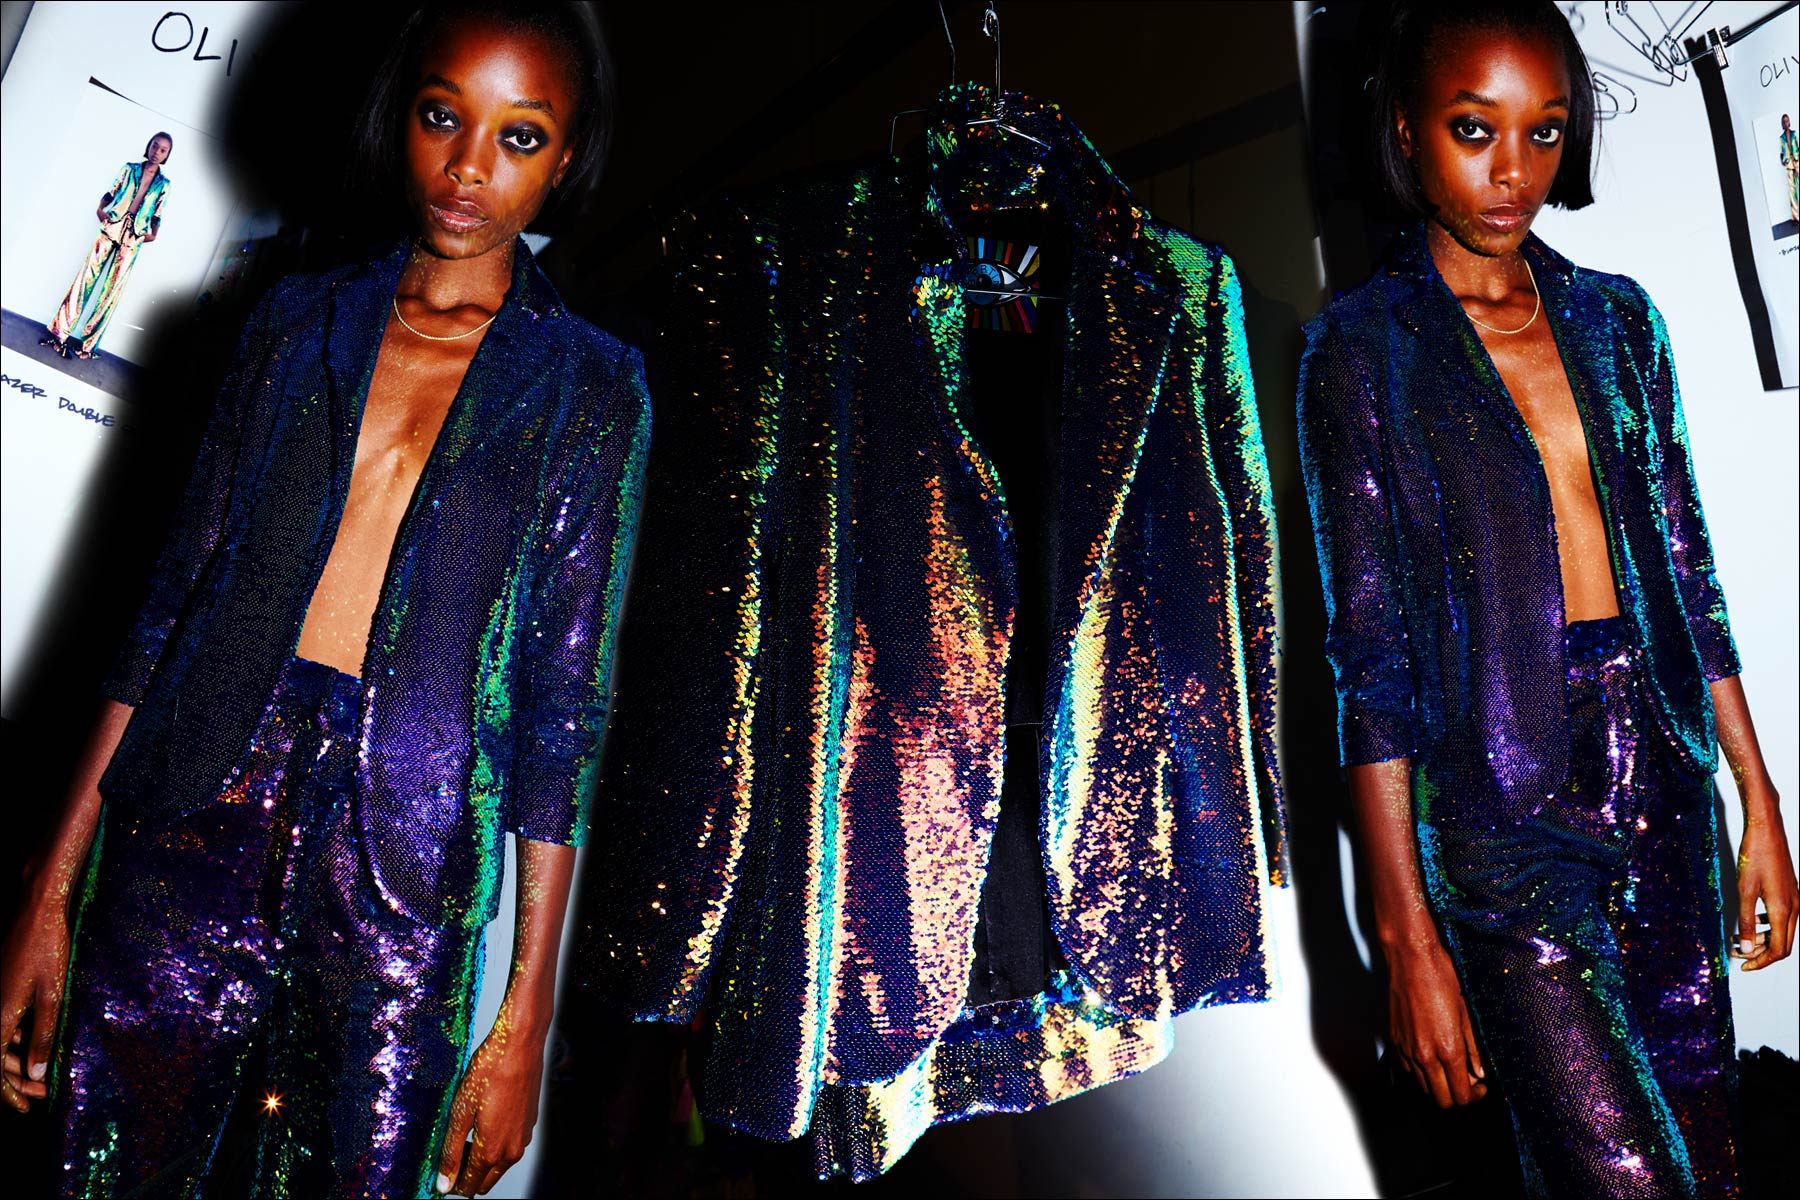 A model wears an iridescent sequin pantsuit from Libertine S/S18. Photographed by Alexander Thompson for Ponyboy magazine NY.